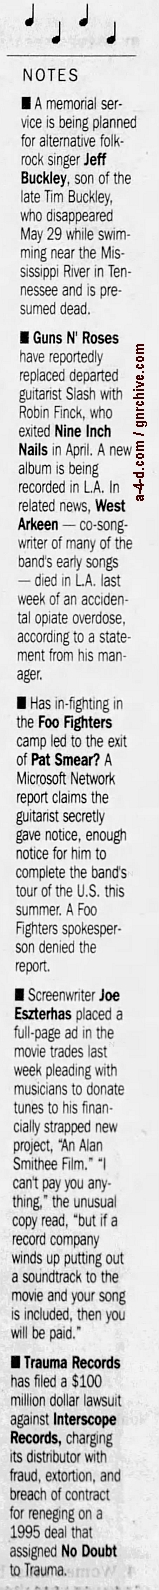 1997.06.06 - News Pilot - Short Notice 1997_021